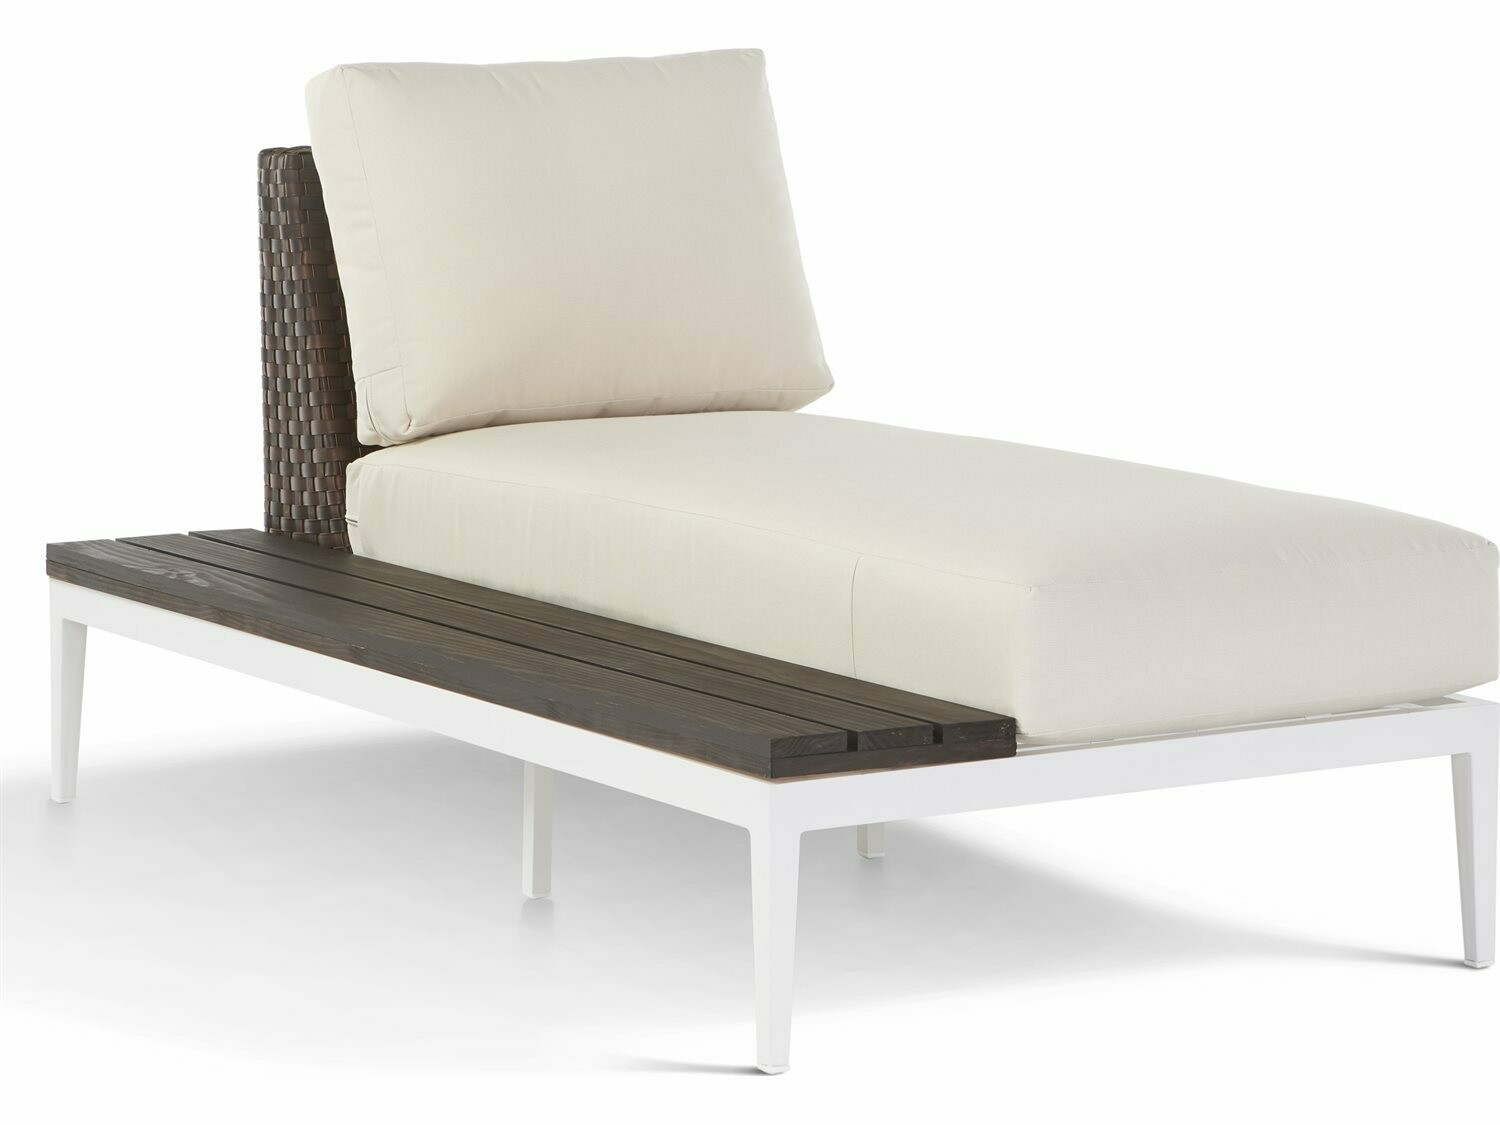 South Sea Rattan Stevie Wicker Chaise Lounge with Left Side Facing Table